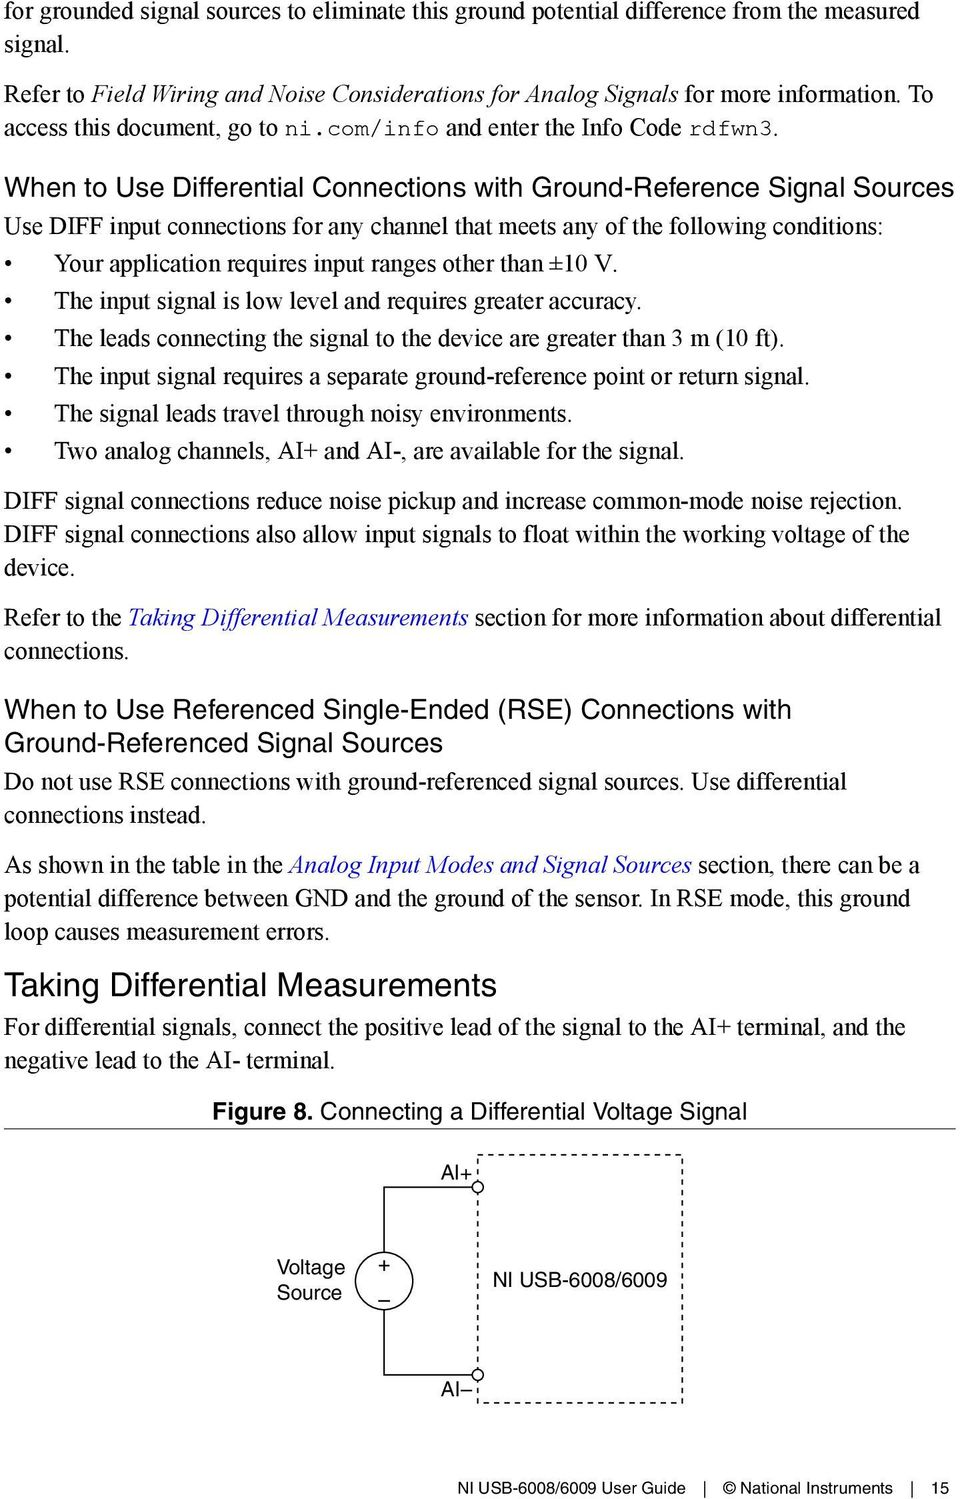 Nicom Manuals Feature Ni Usb 6008 Bits Differential 13 Wiring Diagram When To Use Connections With Ground Reference Signal Sources Diff Input For